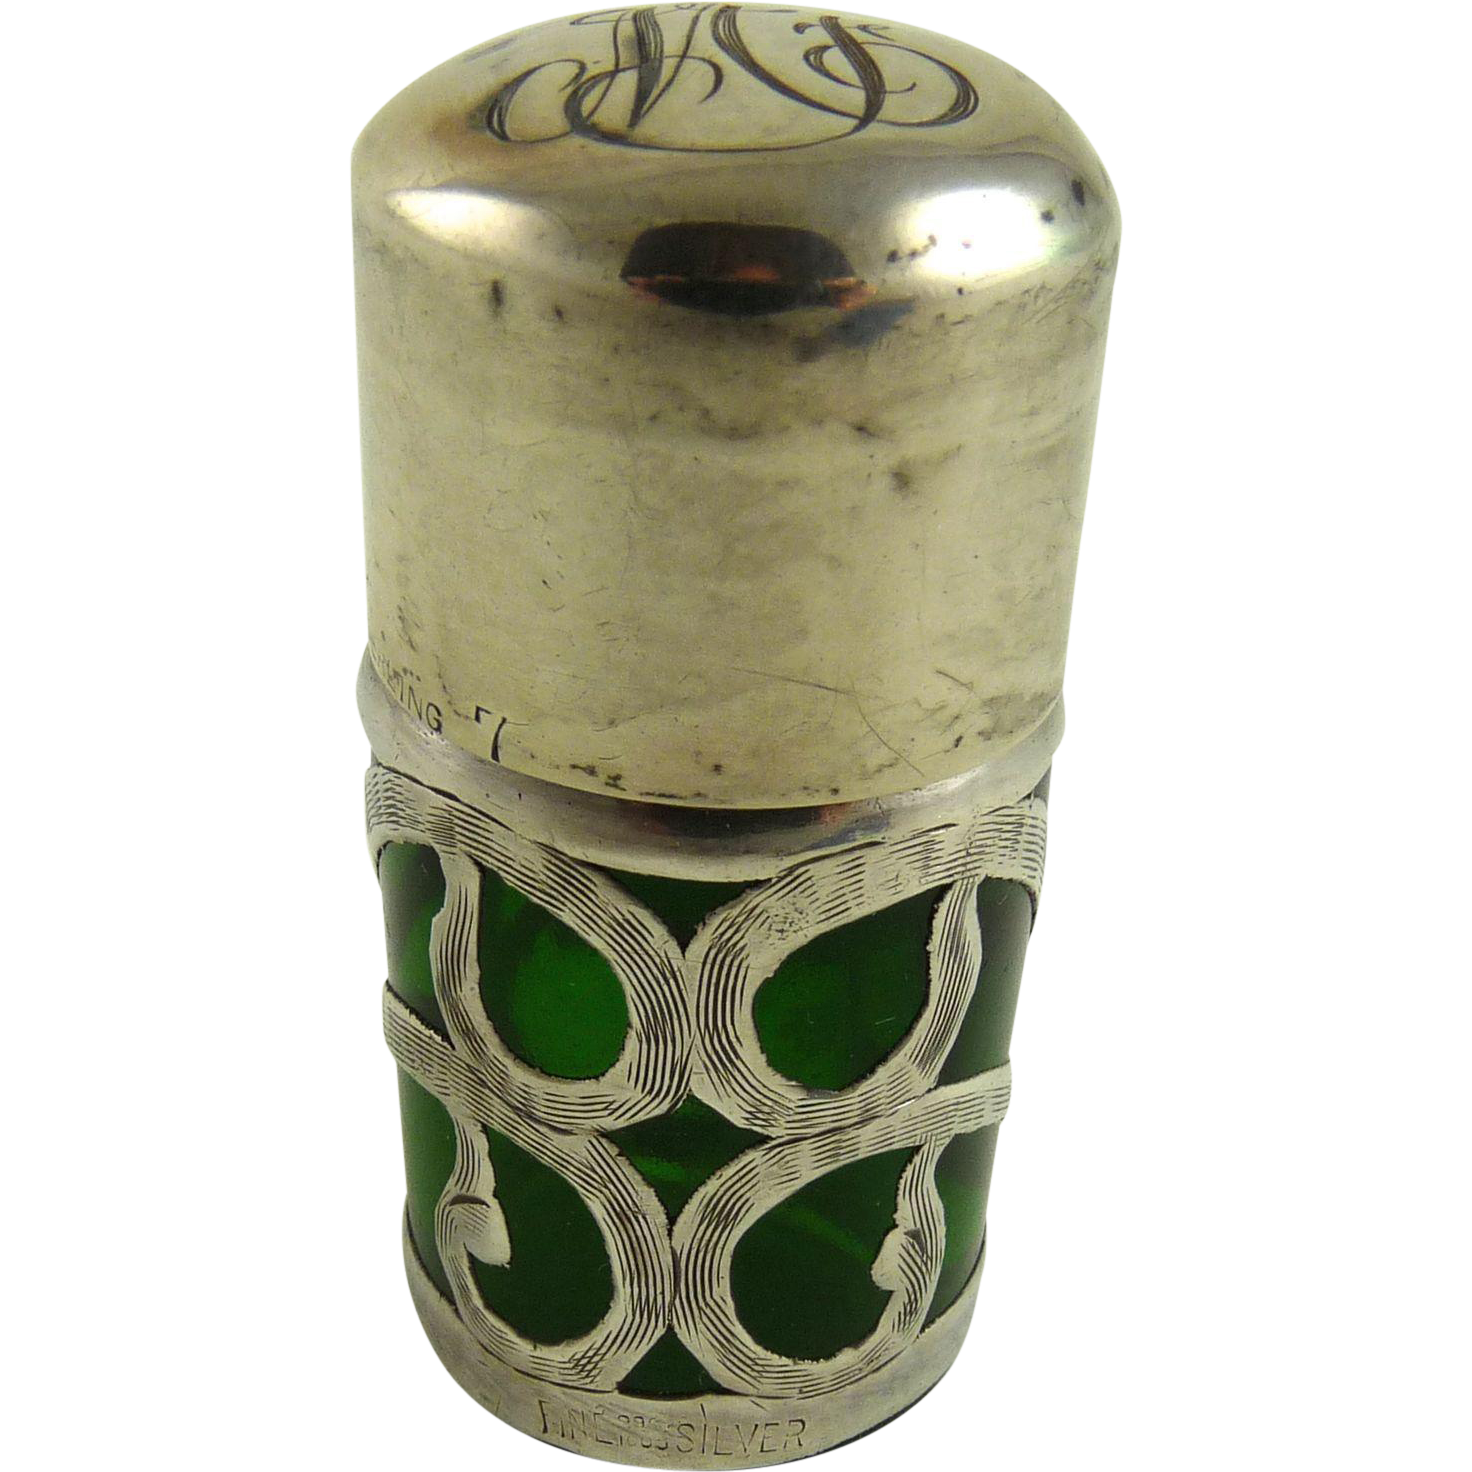 Antique Sterling Overlay Smelling Salts or Perfume Bottle